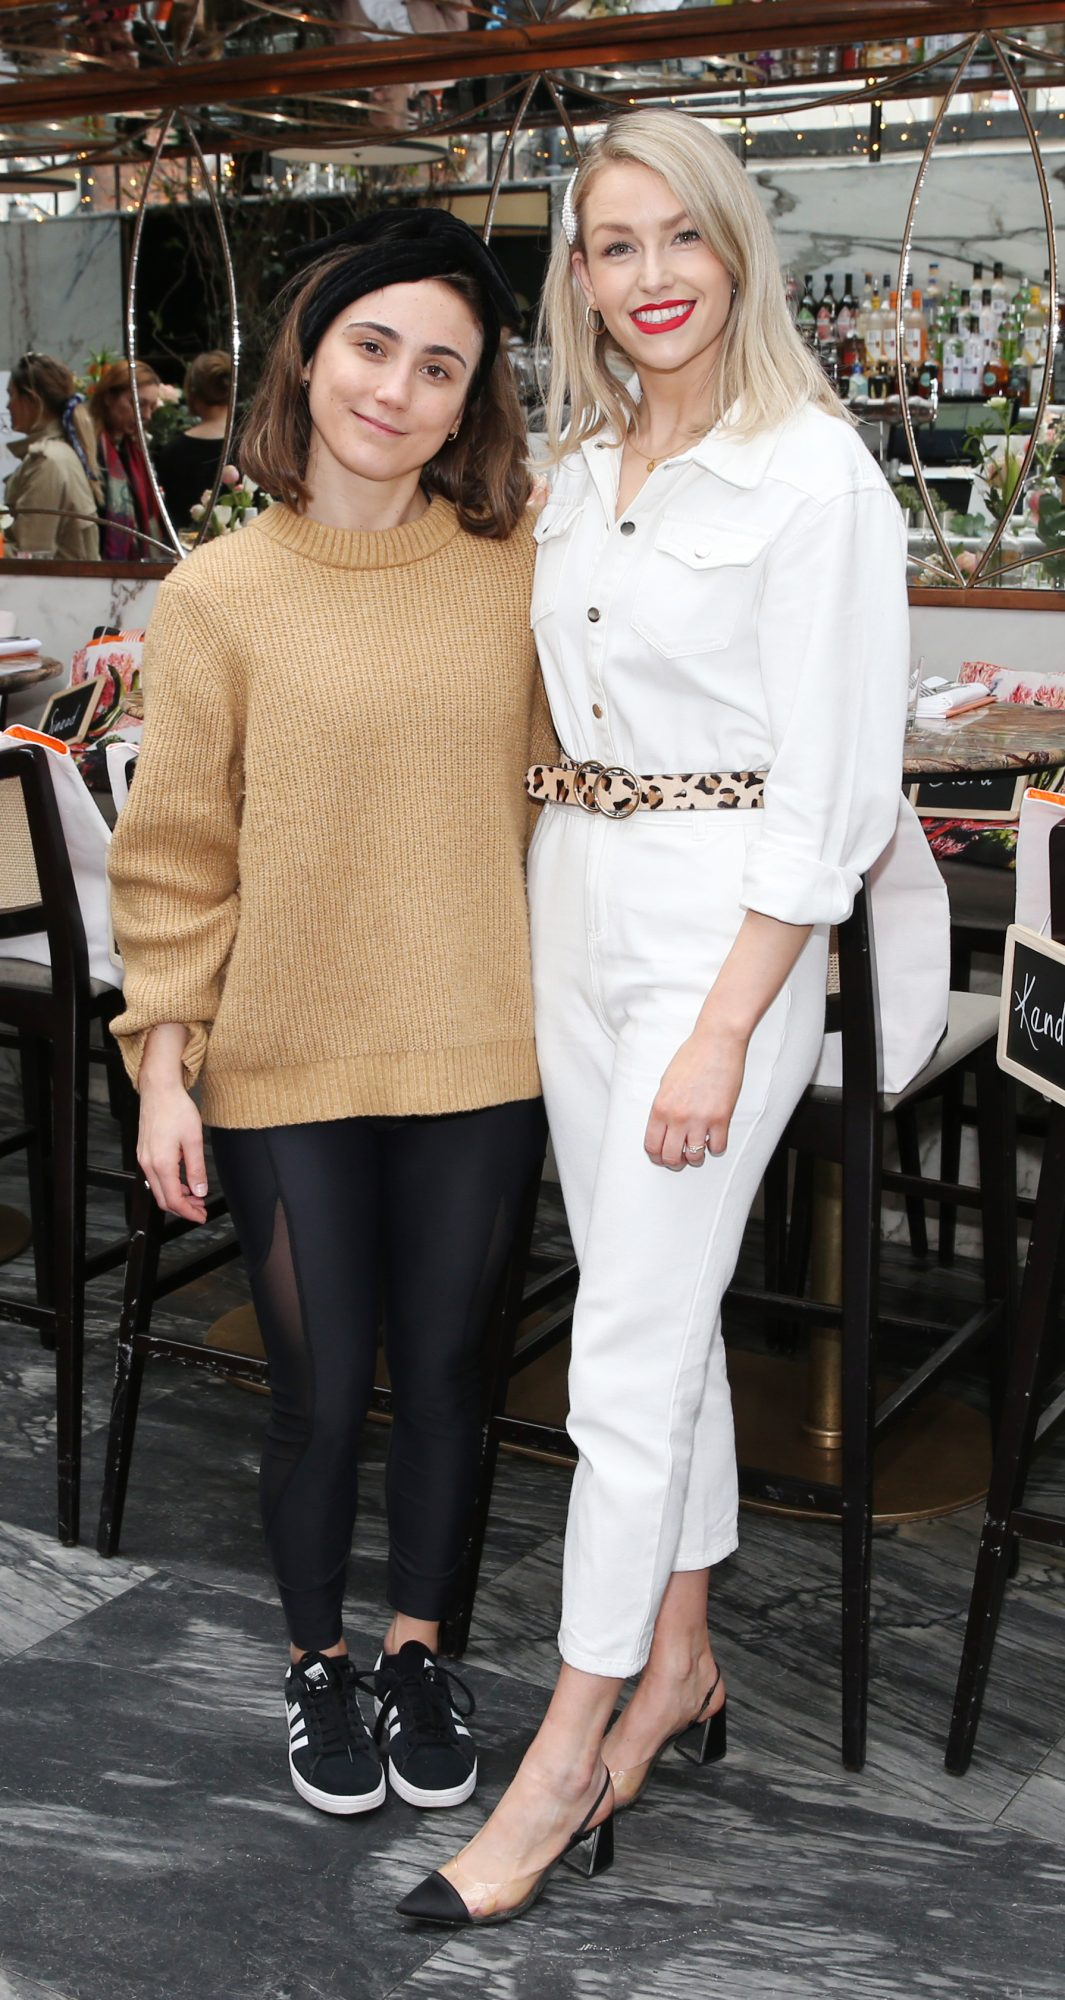 Pictured is Gigi Tynan and Lia Stokes at the launch of the new Avène Expert Suncare Range in The Grayson Dublin. The new range of suncare from the French brand is suitable for all skin types and includes a Sports Sun Cream, a City Shield BB Style High Protection Face Cream, two new SPF Body Sprays and a new Very High Protection Children's SPF. For more information visit www.avene.ie. Photo: Leon Farrell/Photocall Ireland.